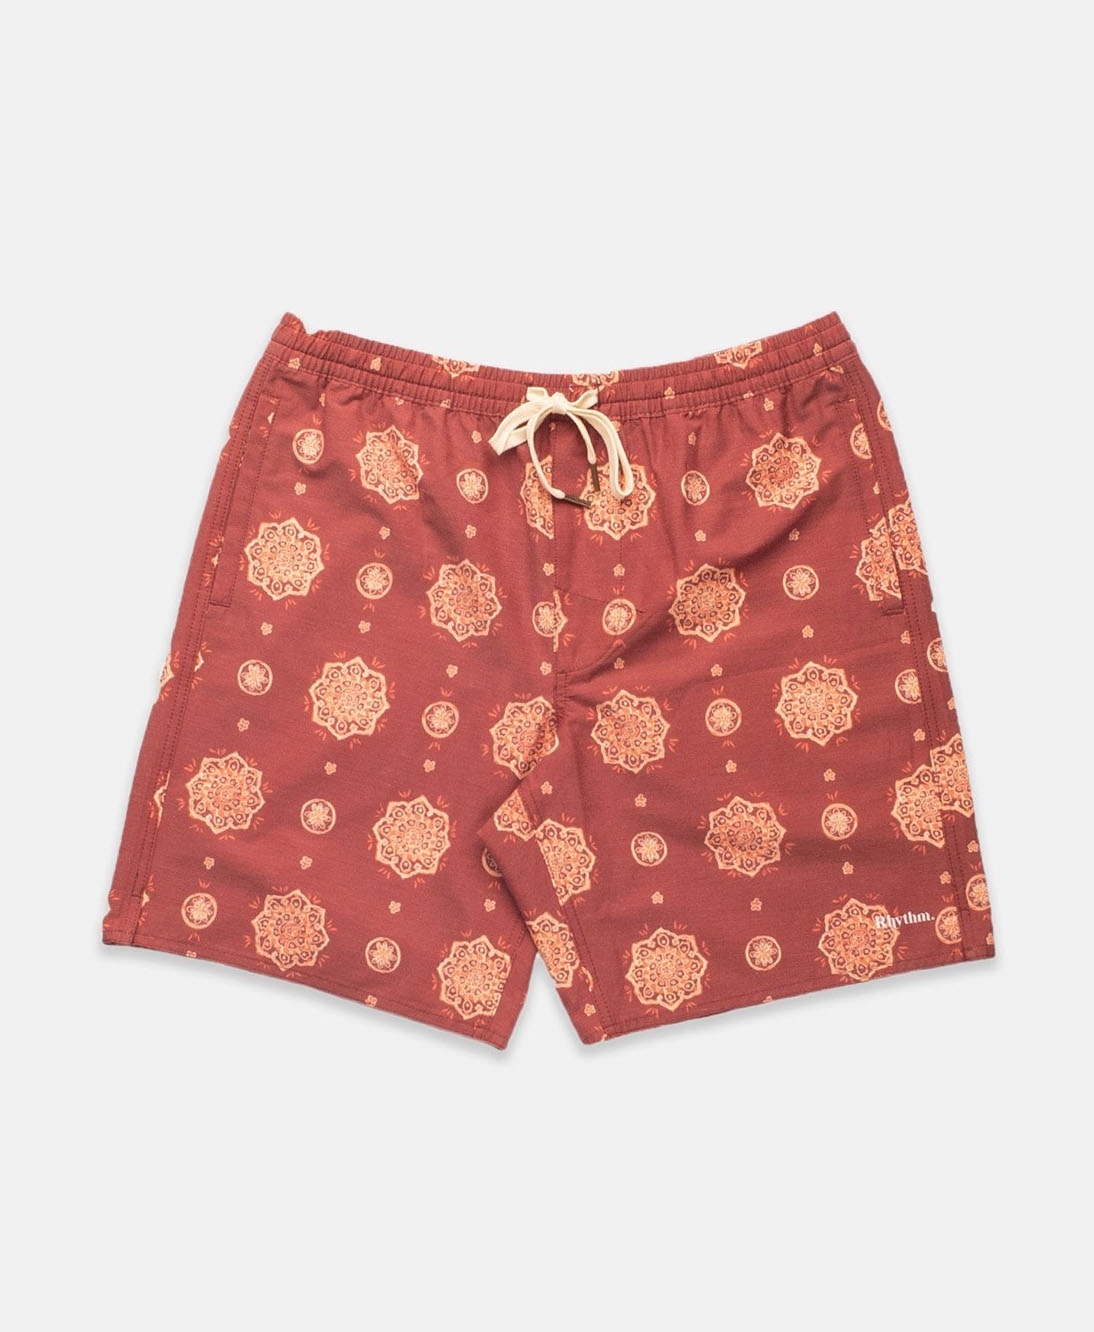 Sundala Beach Short